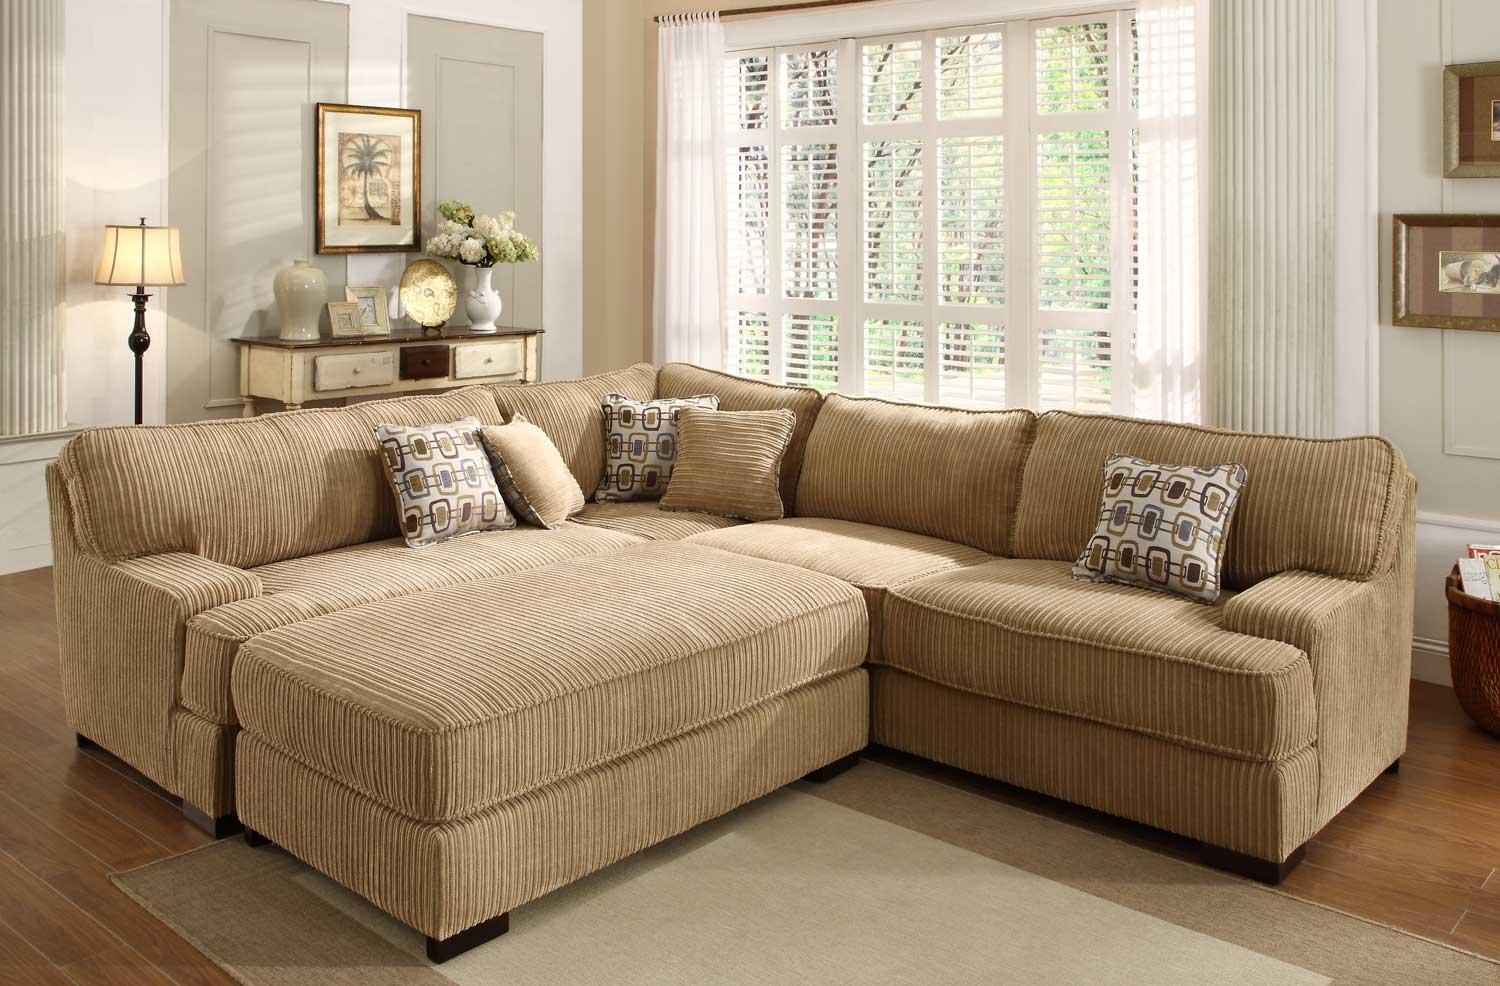 Sofas Center : Oversized Sectionals Sectional Sofas For Sale Regarding Sectional With Large Ottoman (Image 14 of 20)